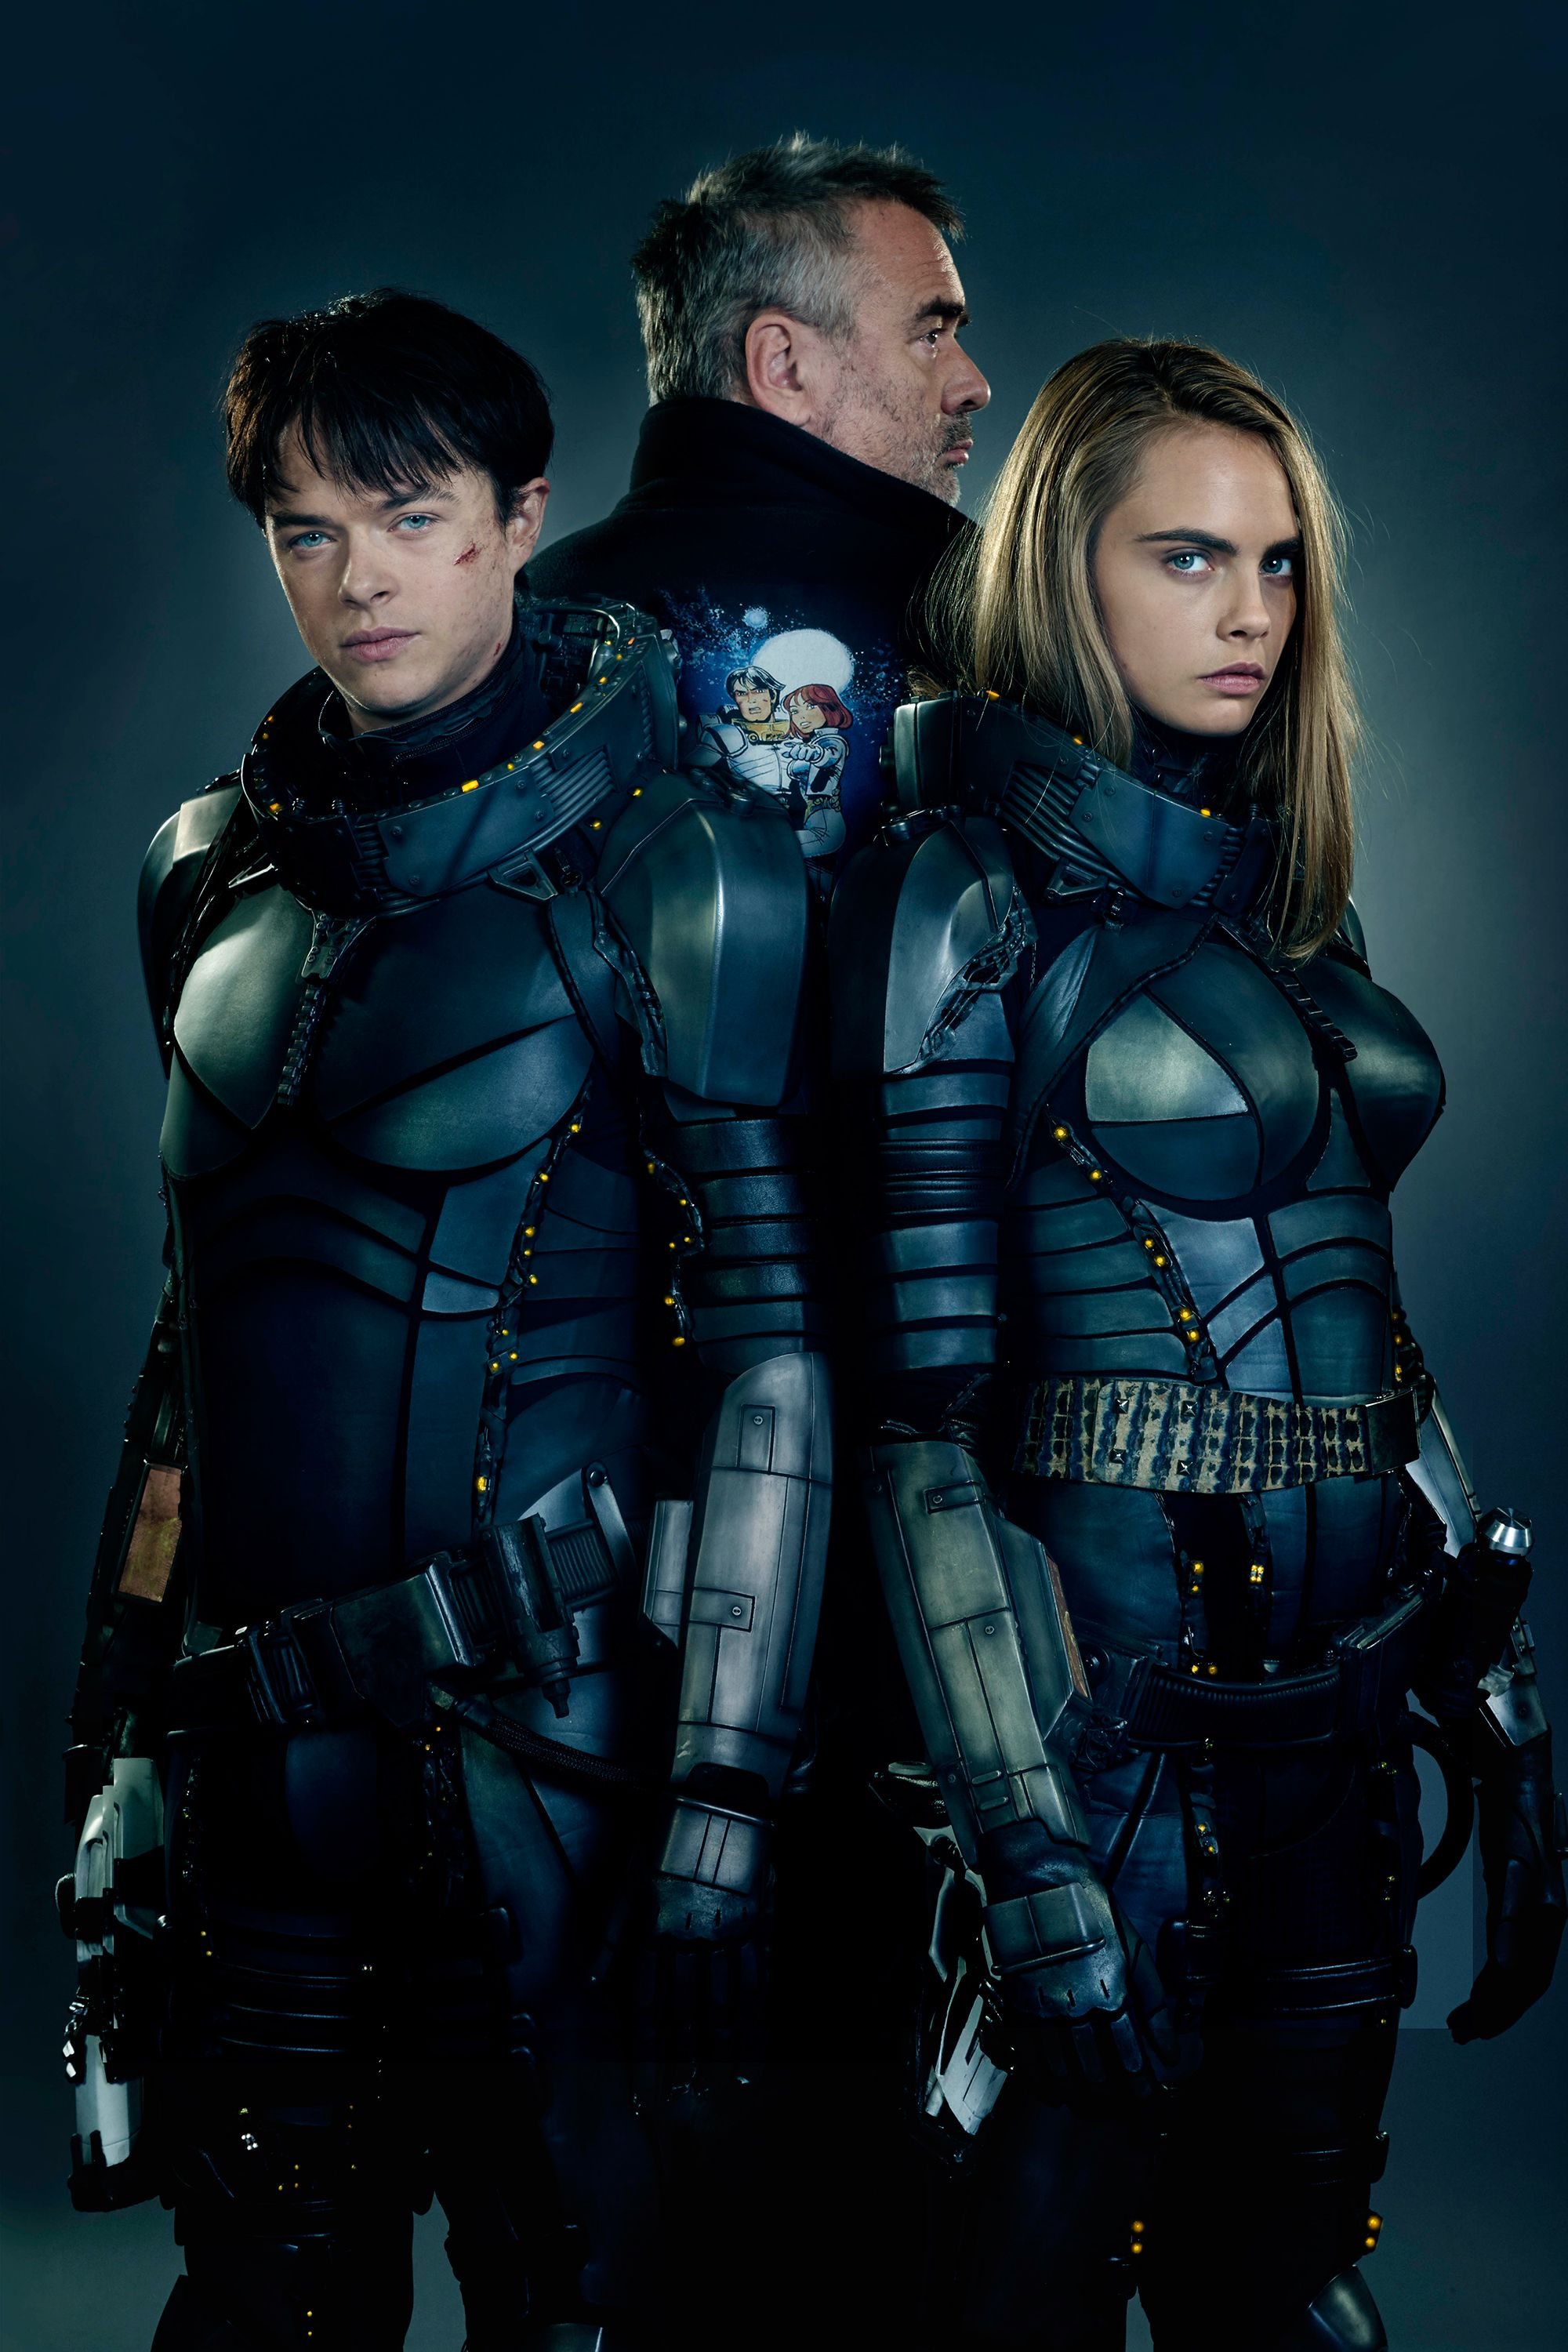 Valerian Film Trailer Starring Rihanna And Cara Delevingne